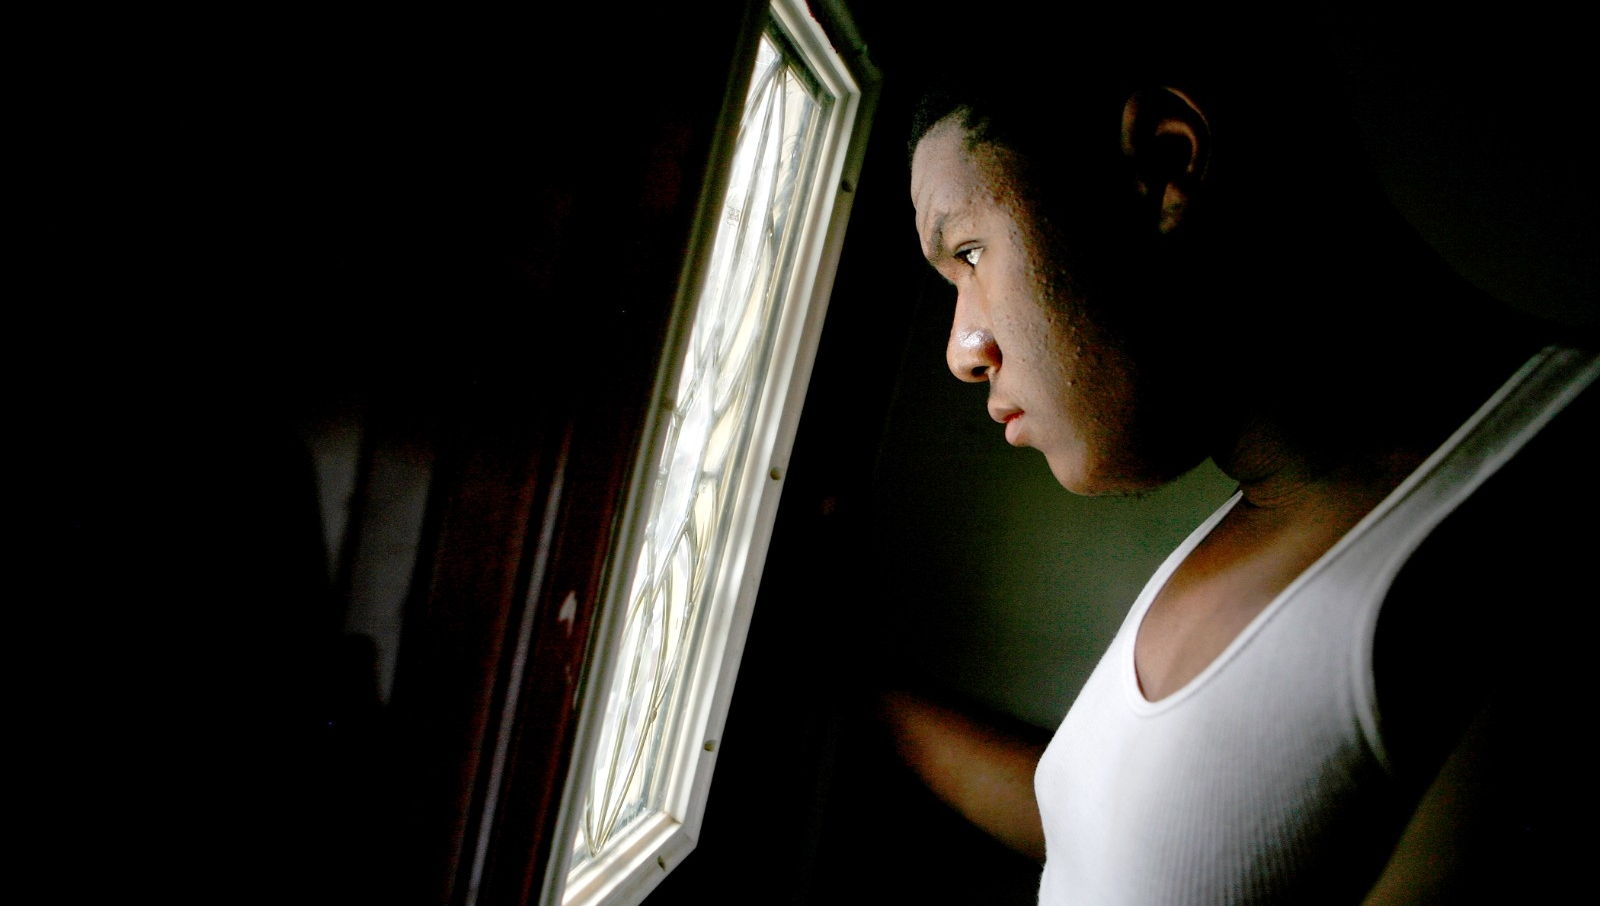 A teenage boy looks out of a window.